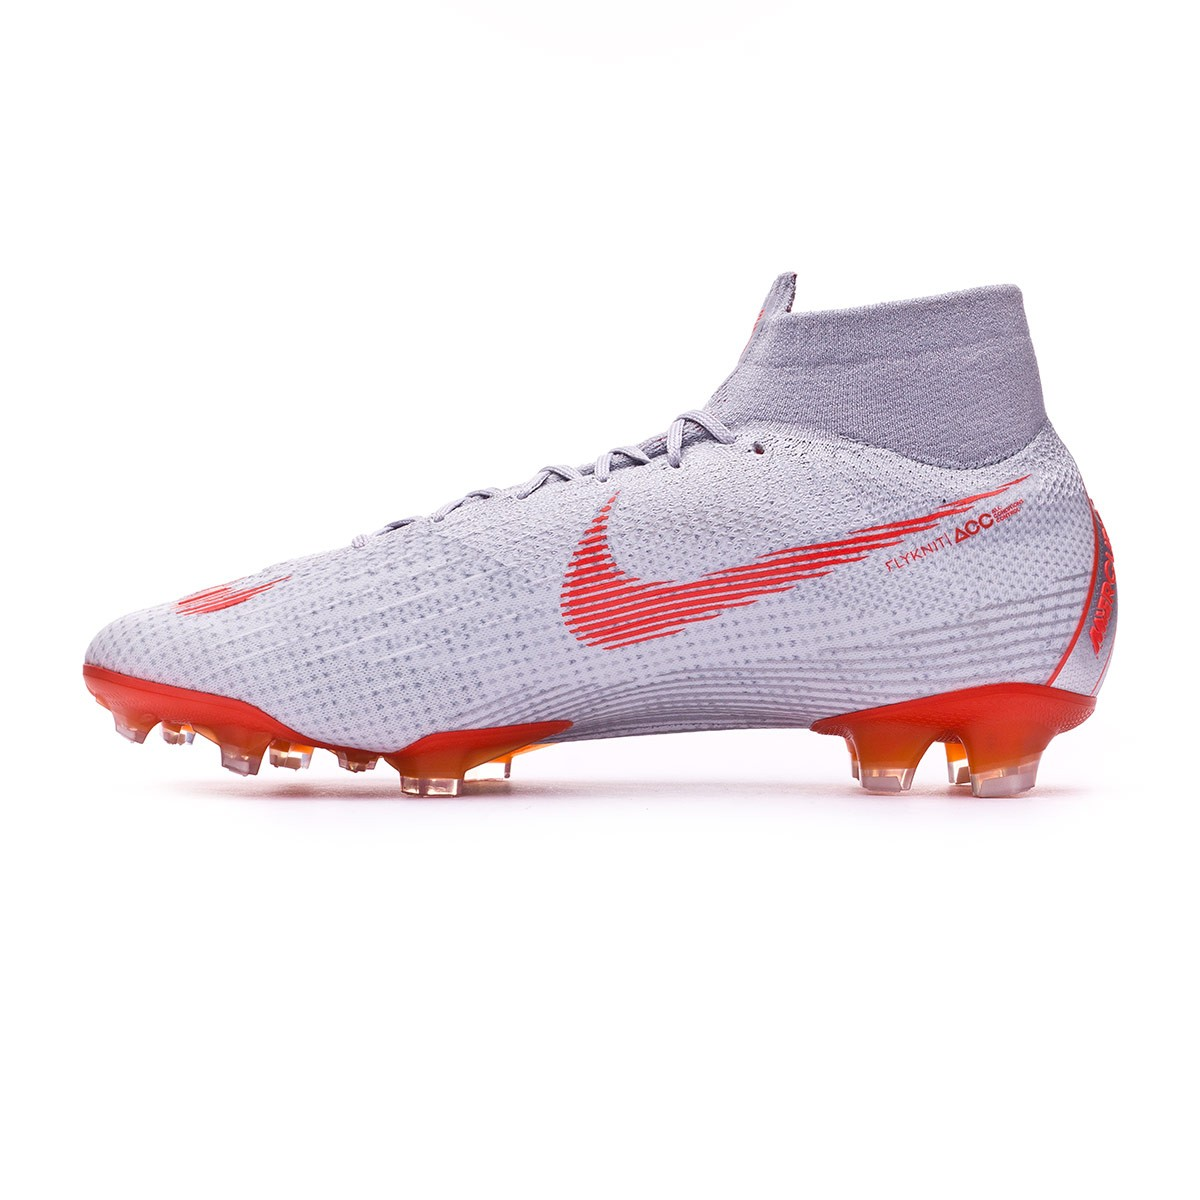 a8a4c87a9a4 Football Boots Nike Mercurial Superfly VI Elite FG Wolf grey-Light crimson-Pure  platinum - Tienda de fútbol Fútbol Emotion